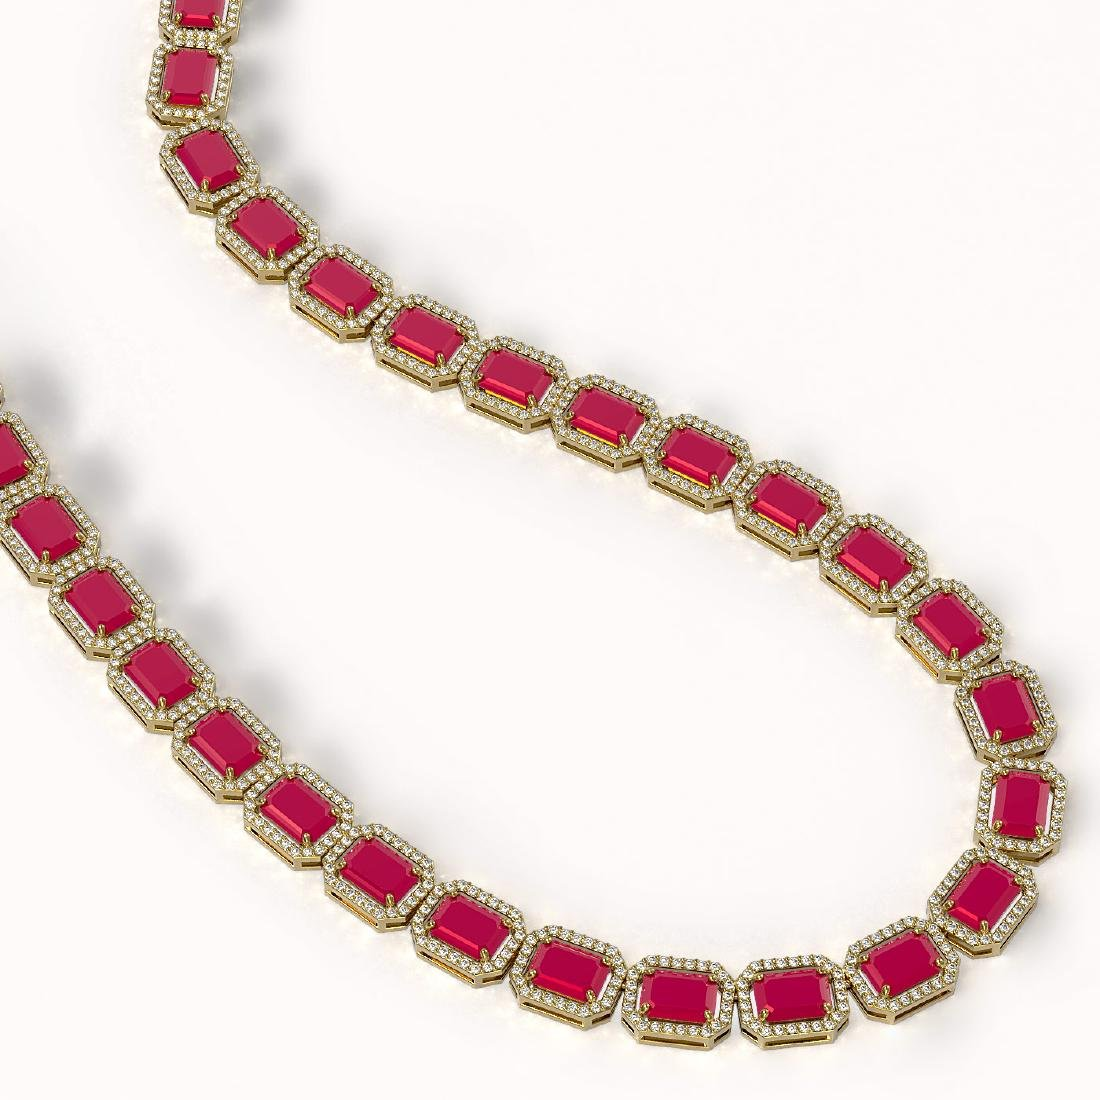 58.59 CTW Ruby & Diamond Halo Necklace 10K Yellow Gold - 2